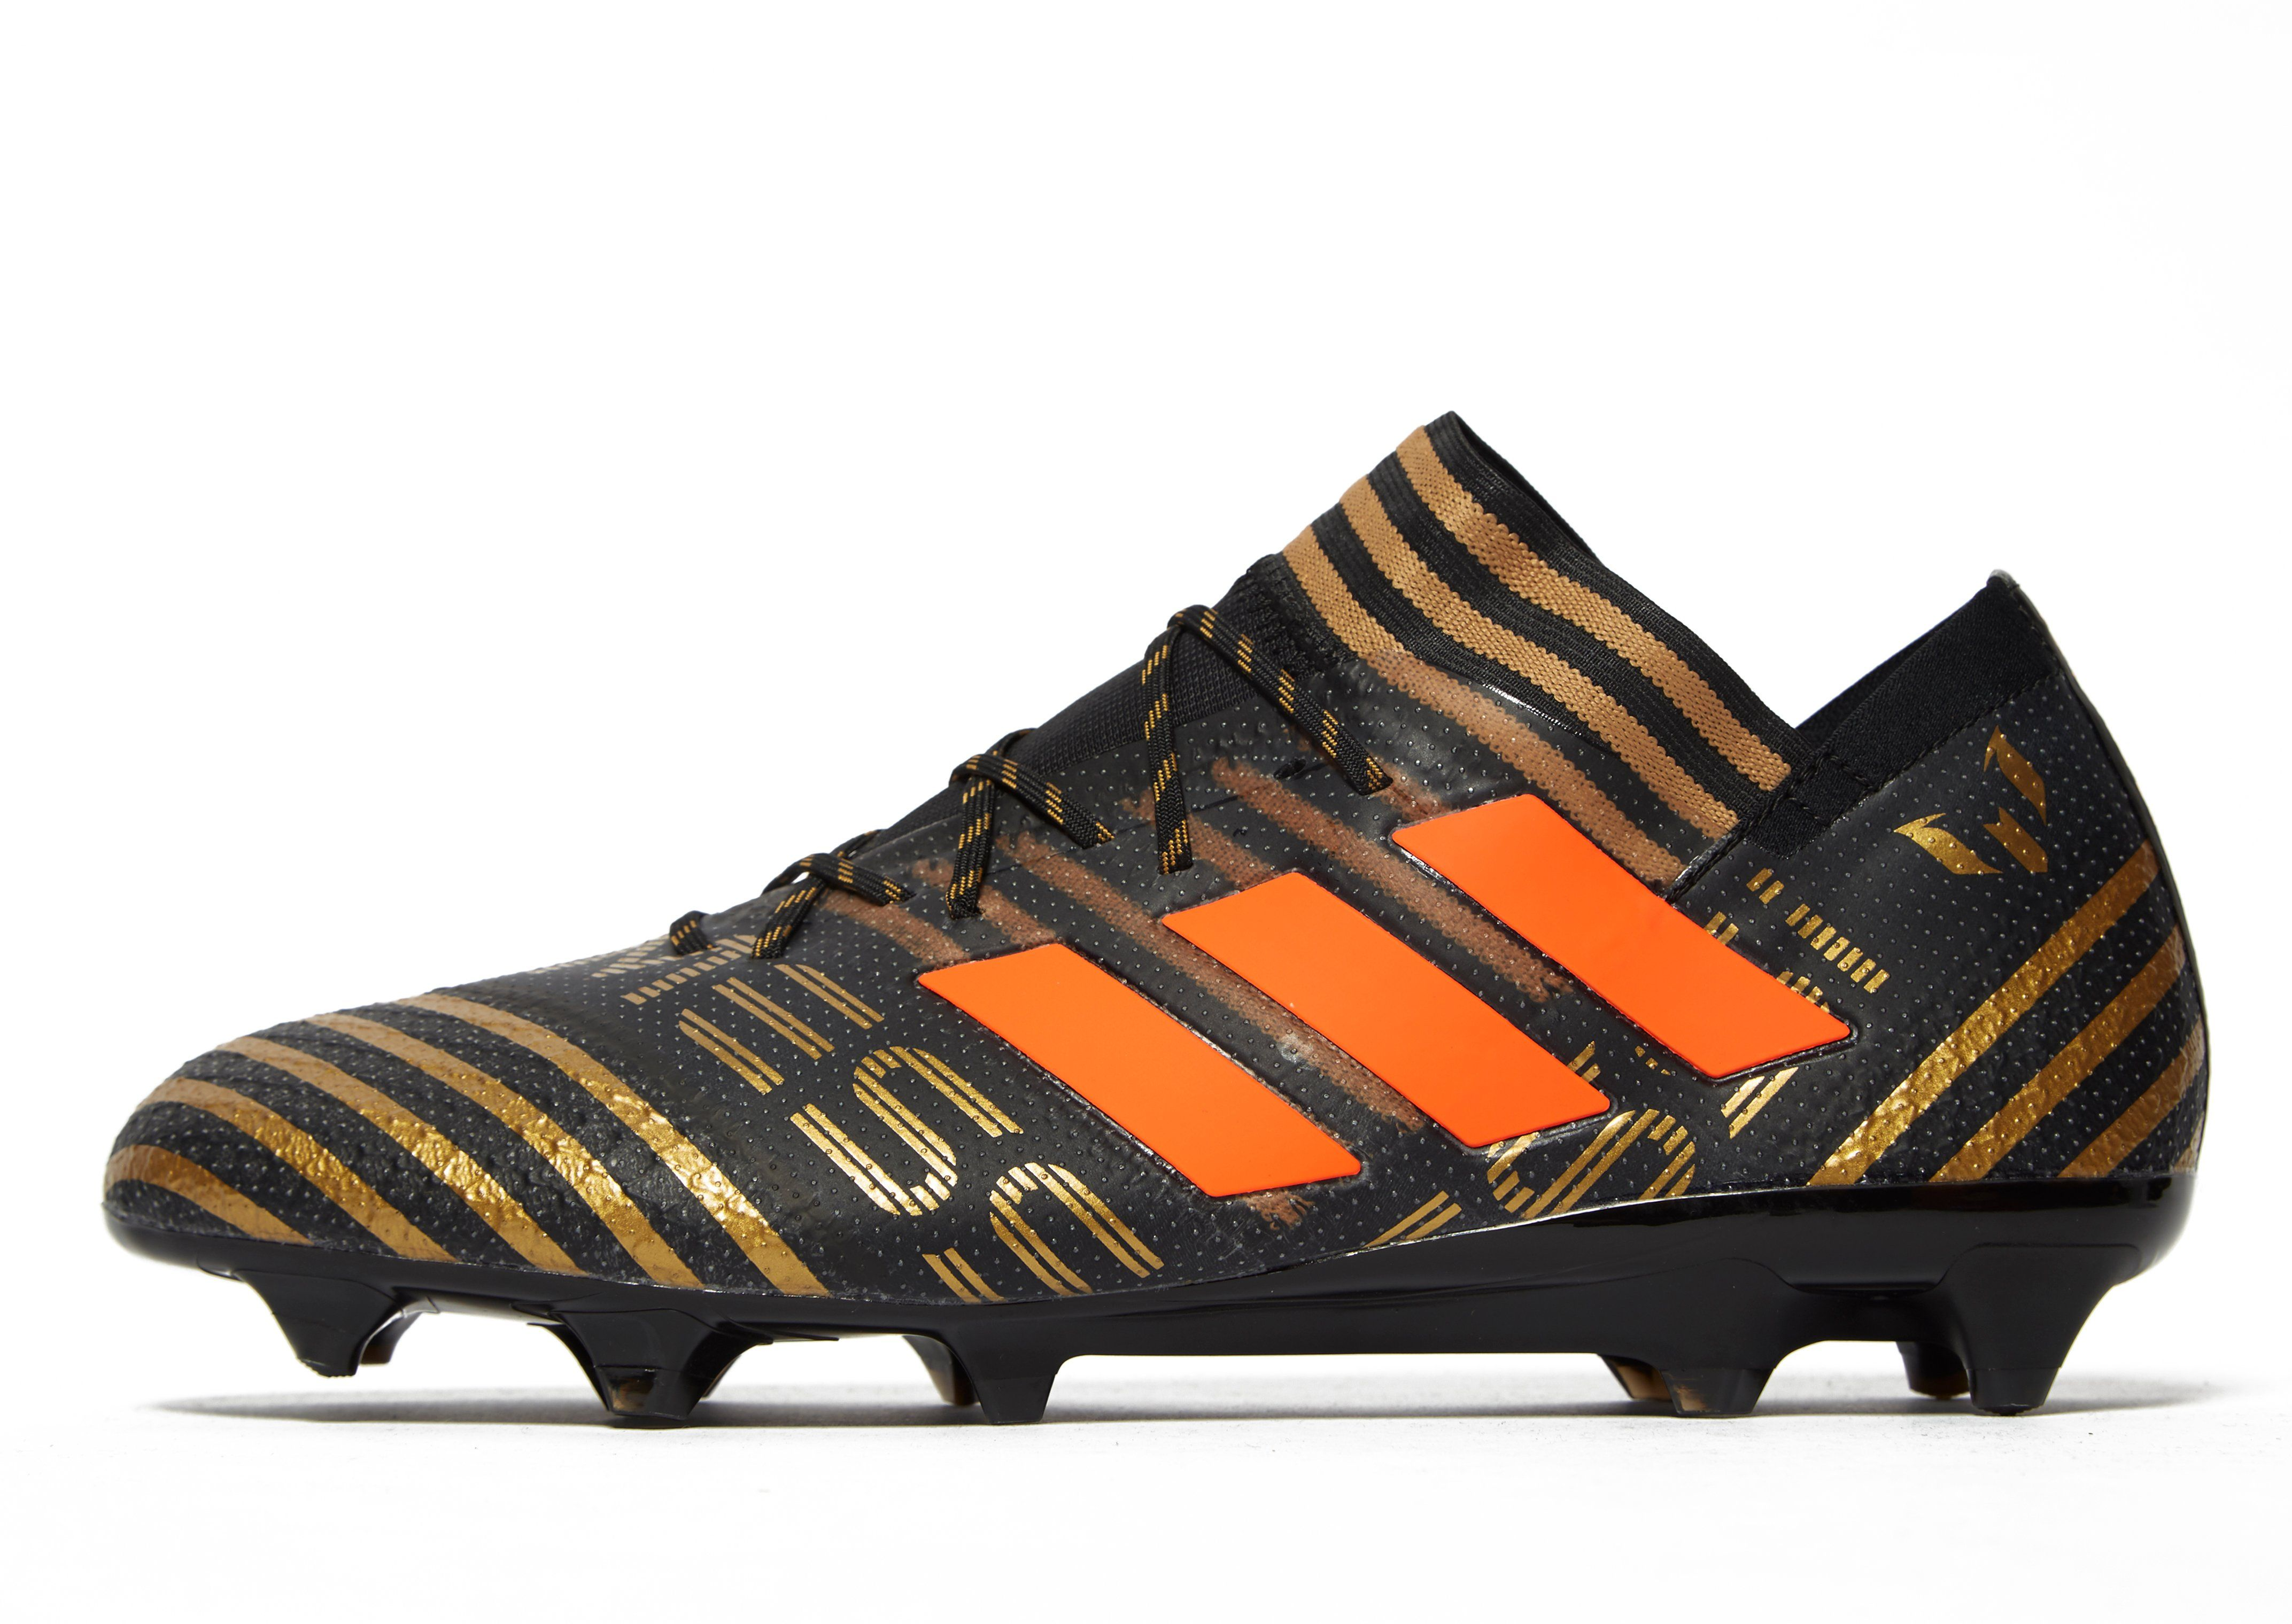 New Adidas Soccer Shoes Messi